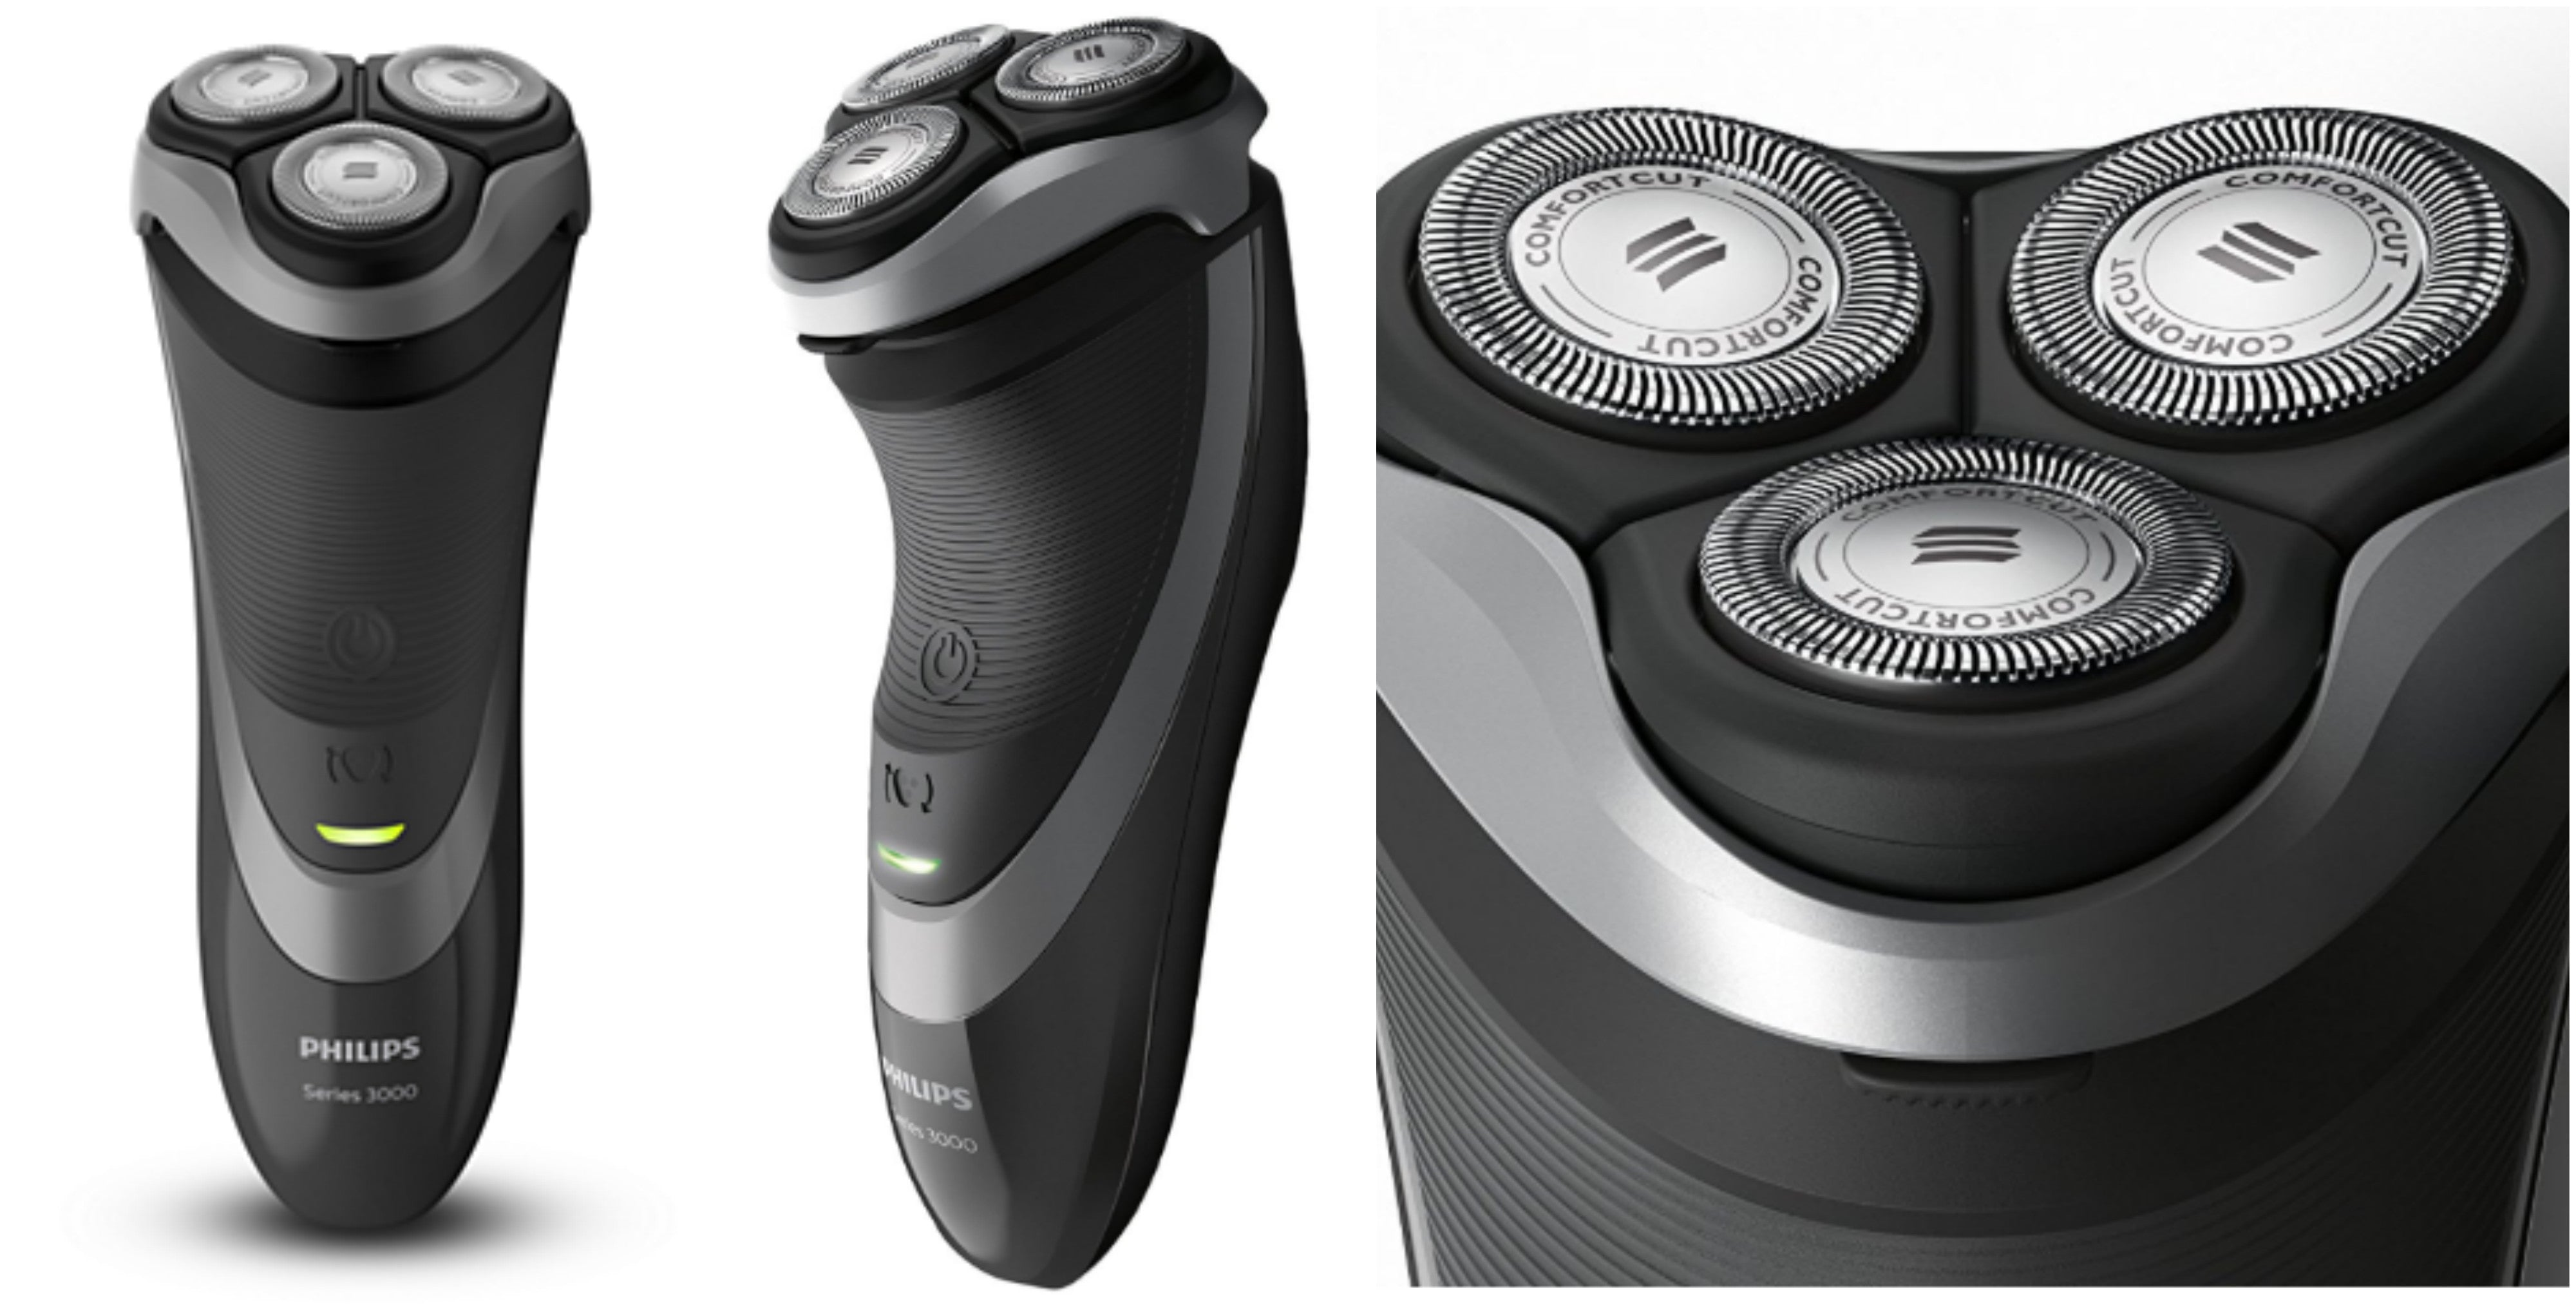 Philips S3510/08 Dry Shaver with Pop-Up Trimmer REFURBISHED